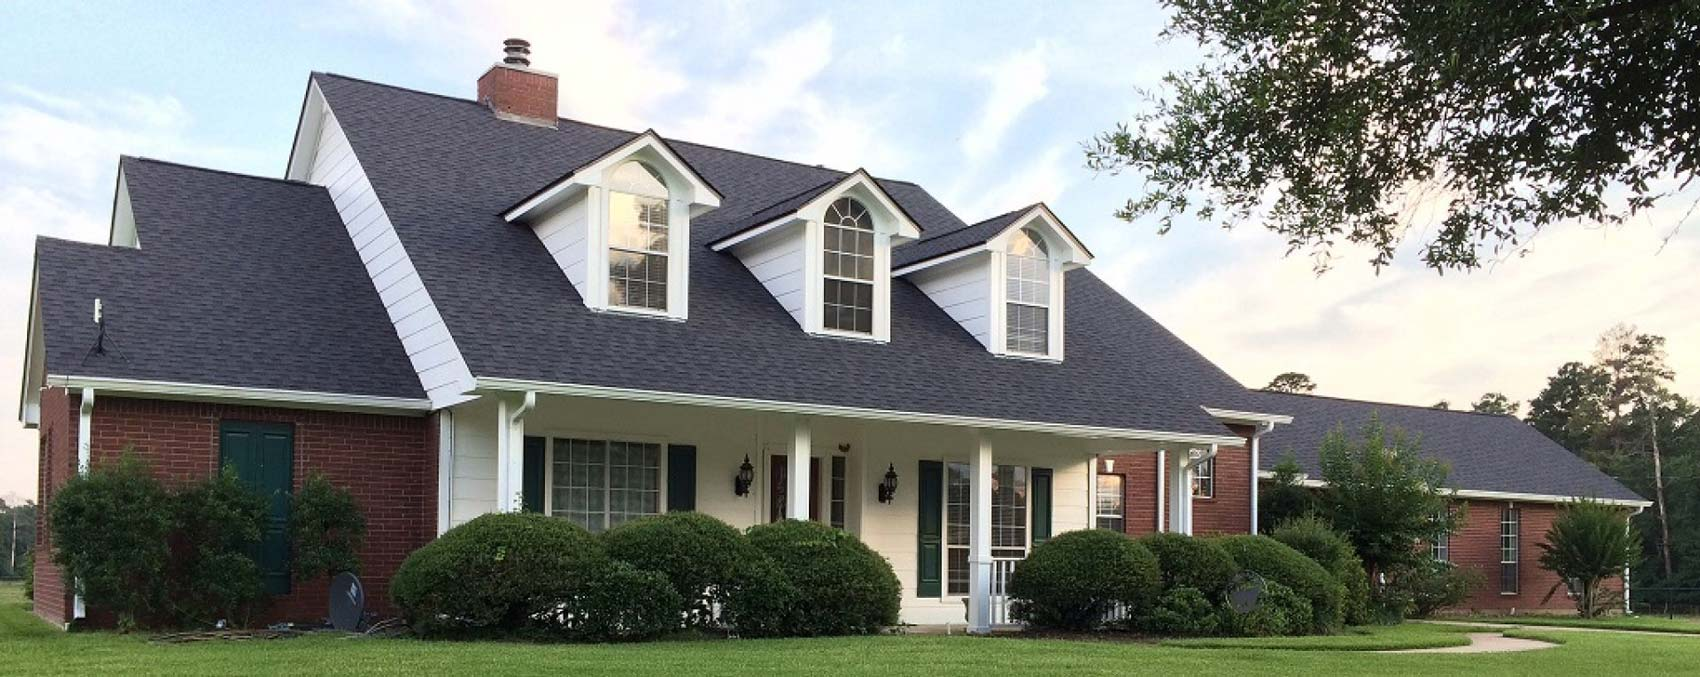 Target Roofing |  Residential and Commercial Roofing Services | Houston and San Antonio Areas